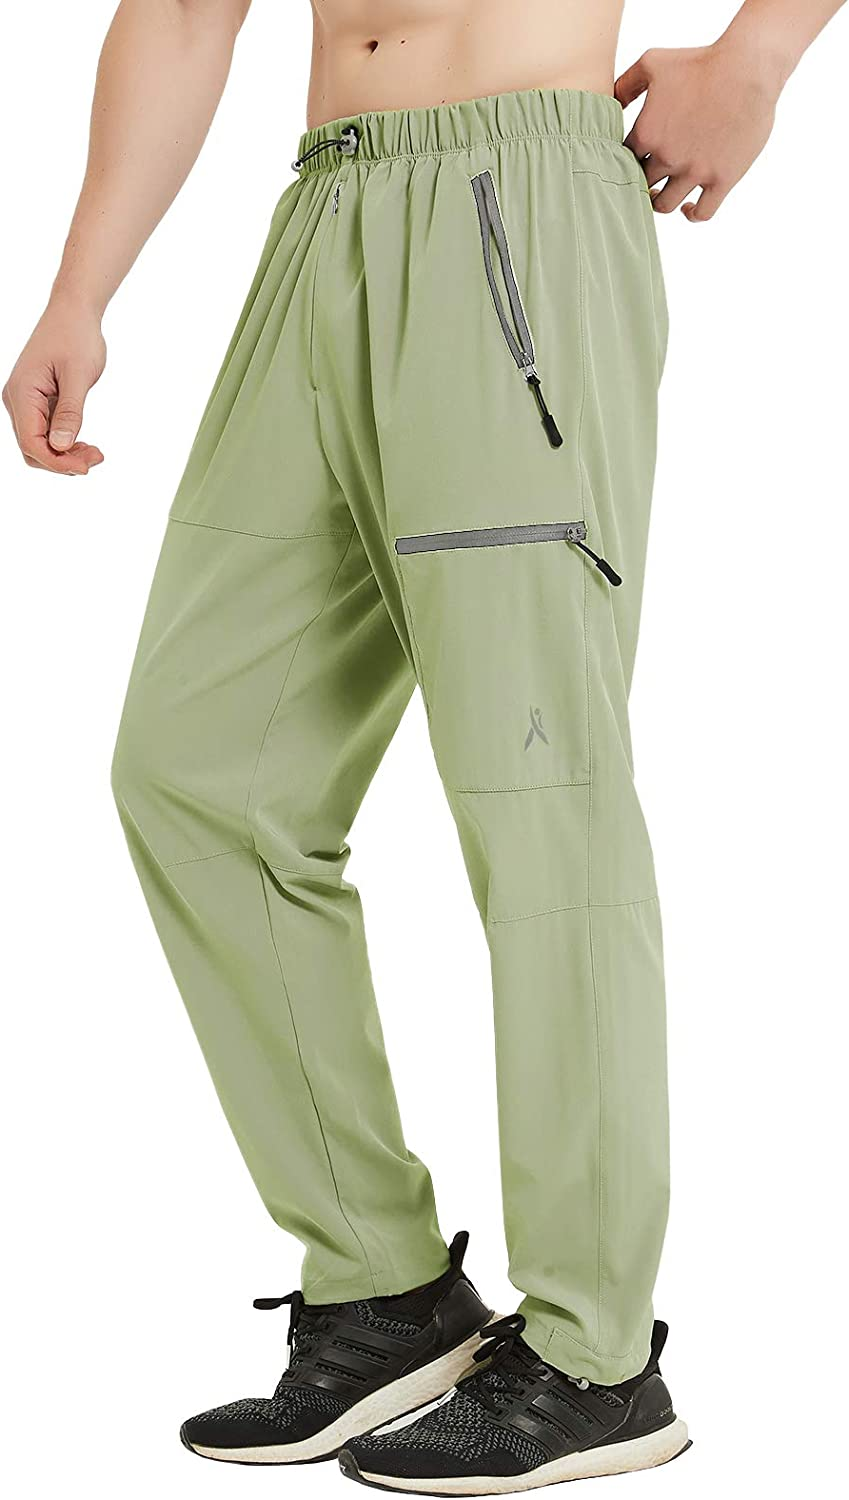 PRIESSEI Men's Quick Dry Hiking Pants Breathable Outlet SALE lowest price L Workout